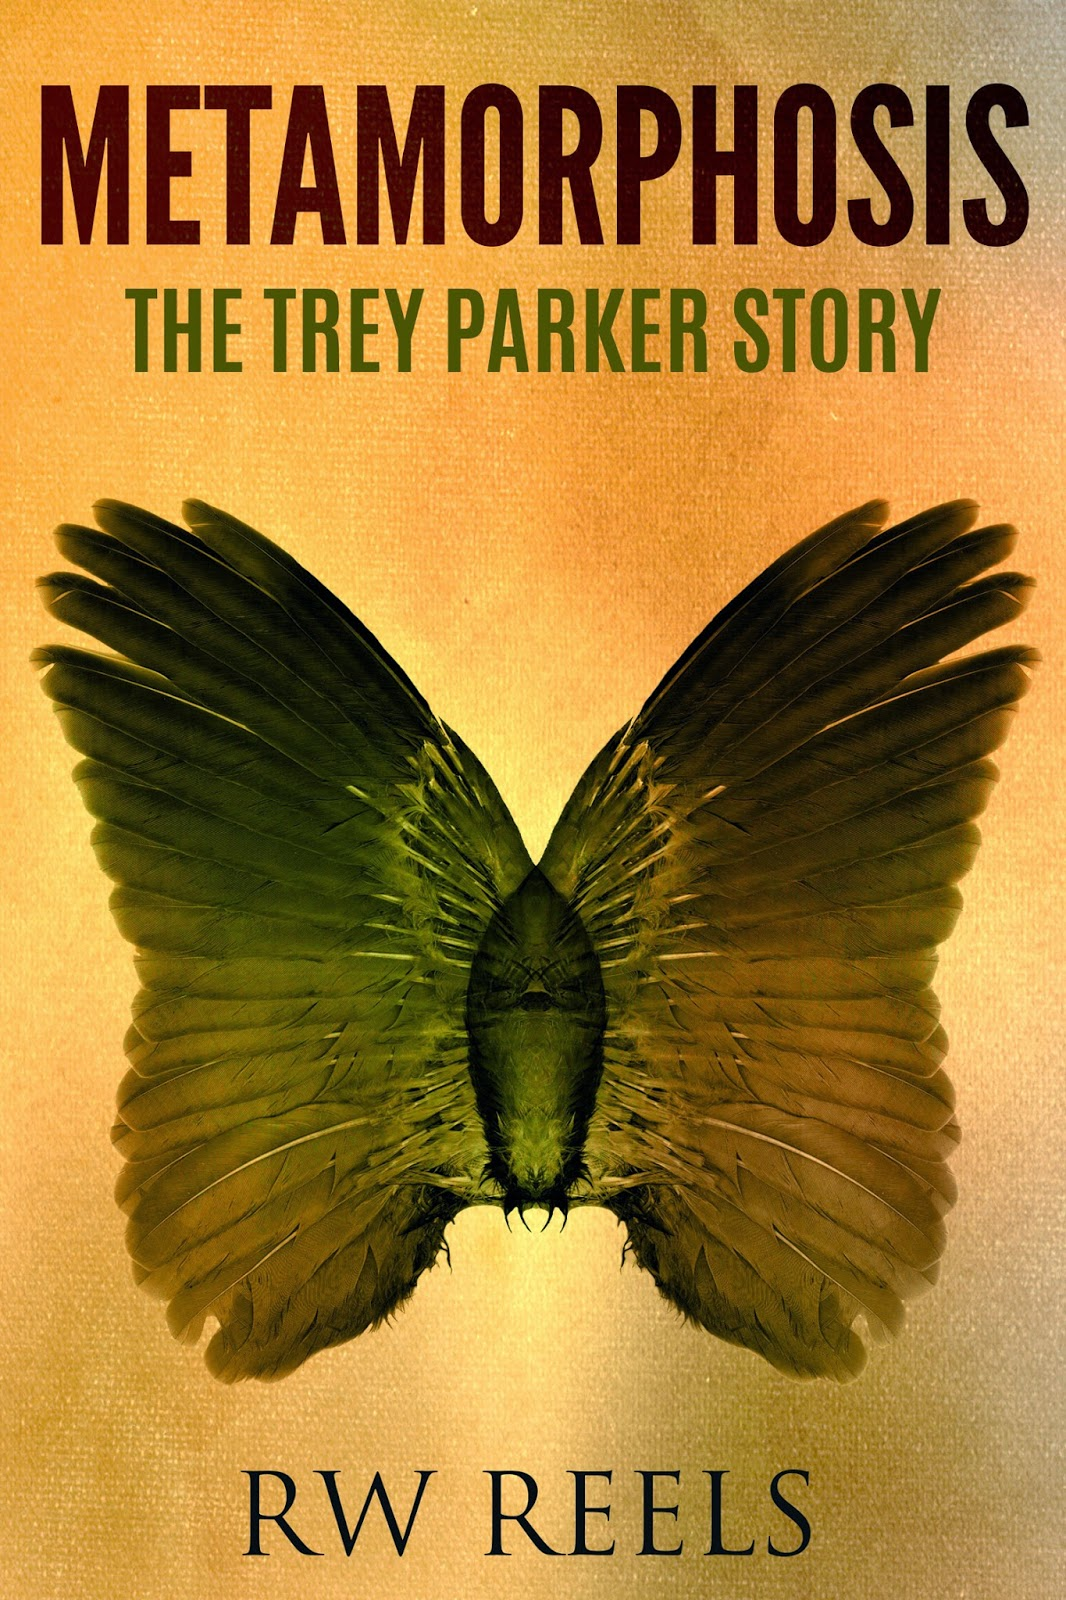 Book excerpt for paranormal suspense novel  Metamorphosis: The Trey Parker Story by R.W. Reels